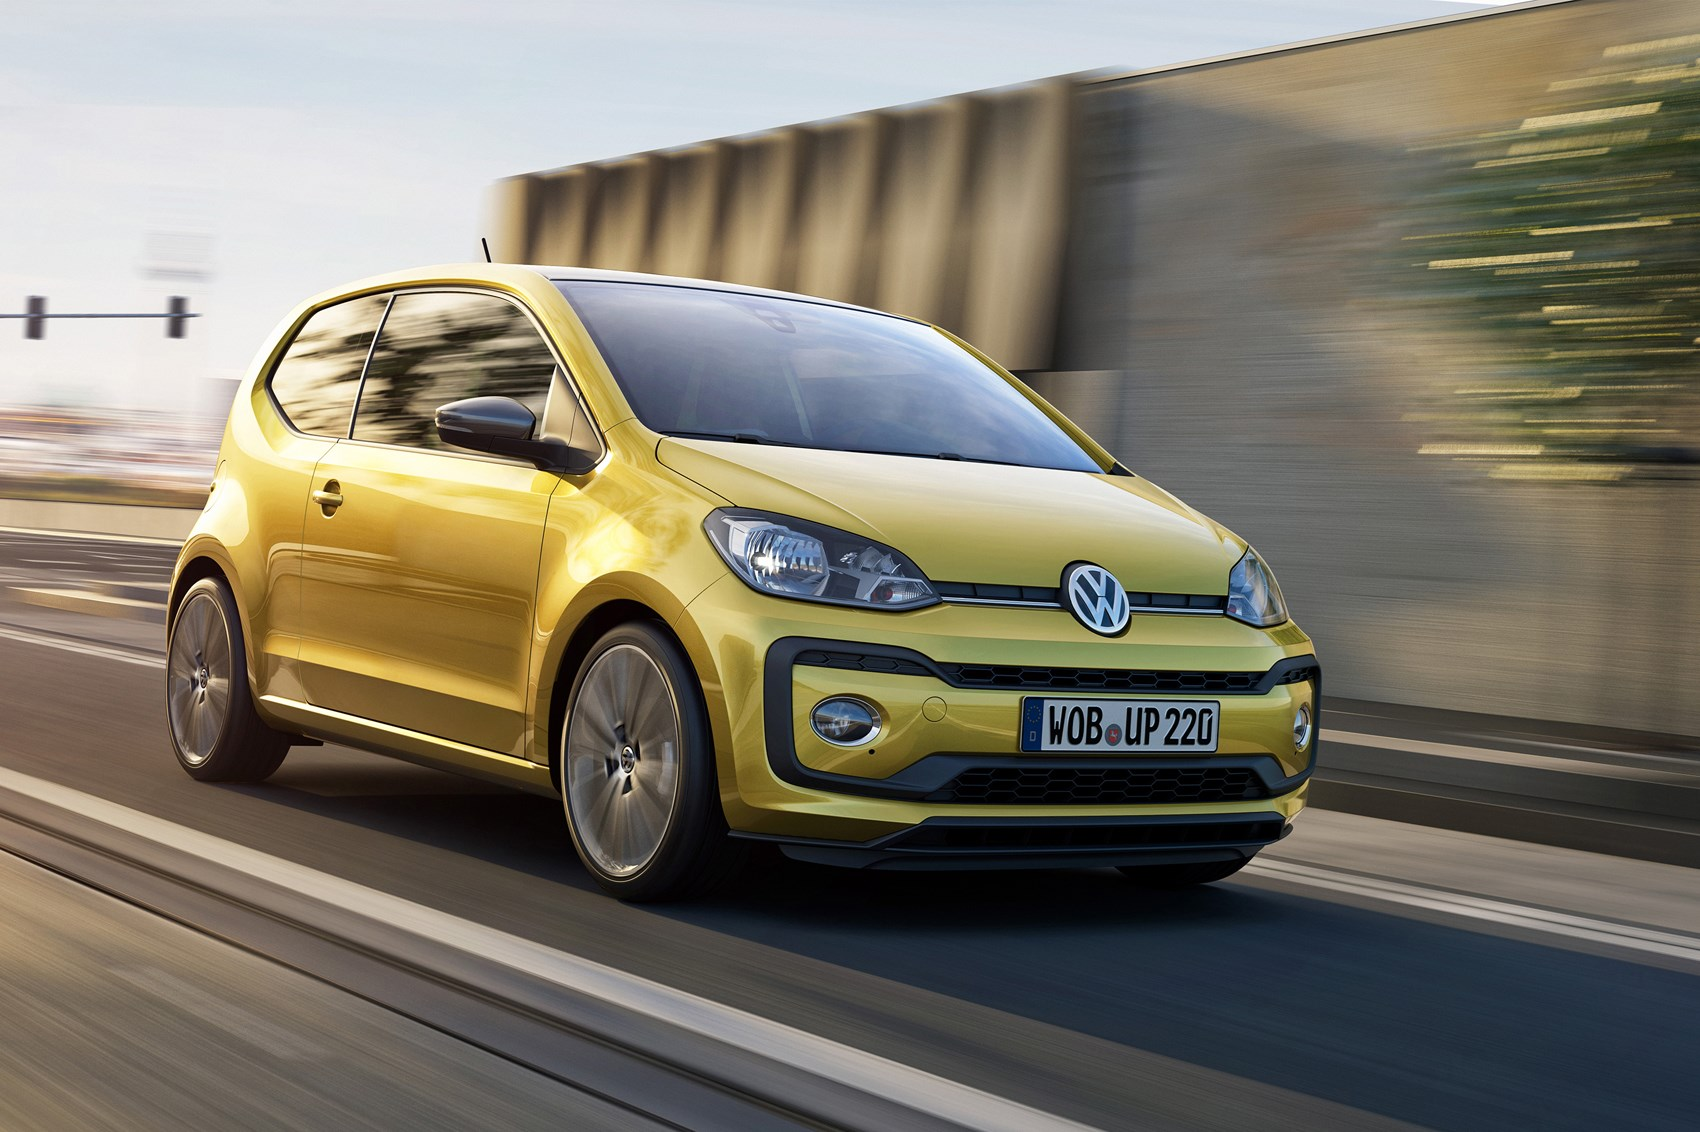 vw up gets a facelift a nipped tucked up for 2016 by car magazine. Black Bedroom Furniture Sets. Home Design Ideas